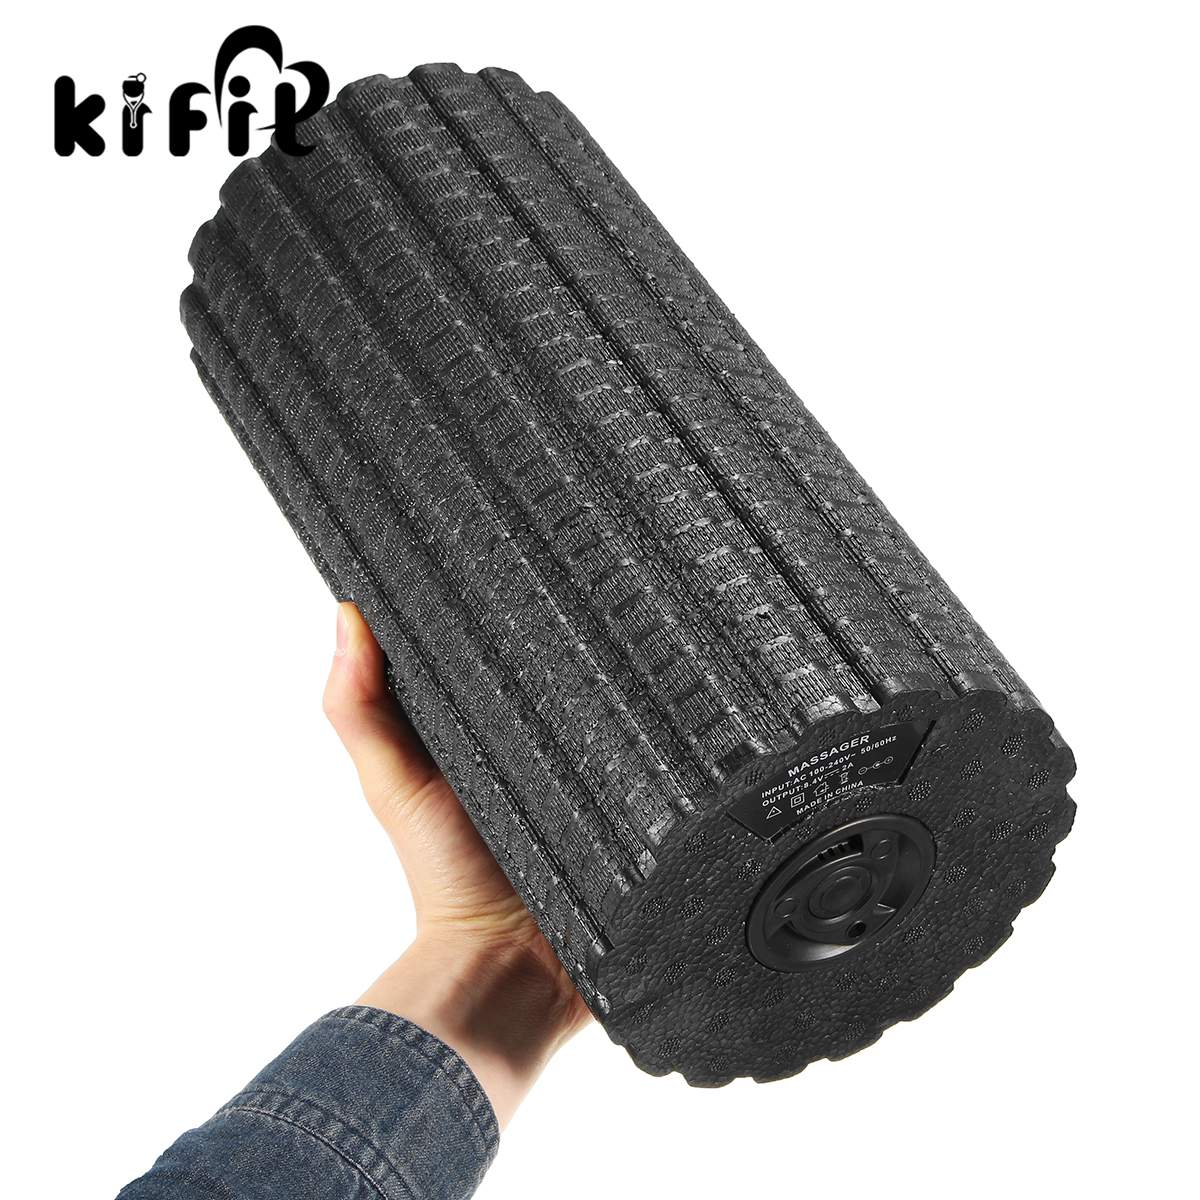 Kift 1 pcs Fitness Roller Body Slimming Massage Roller Yoga Massage Electric Vibrator Relaxing Foam Roller Massage Electric 30cm 15cm electric vibration eva foam roller floating point fitness massage roller 3 speed adjustable for physical therapy